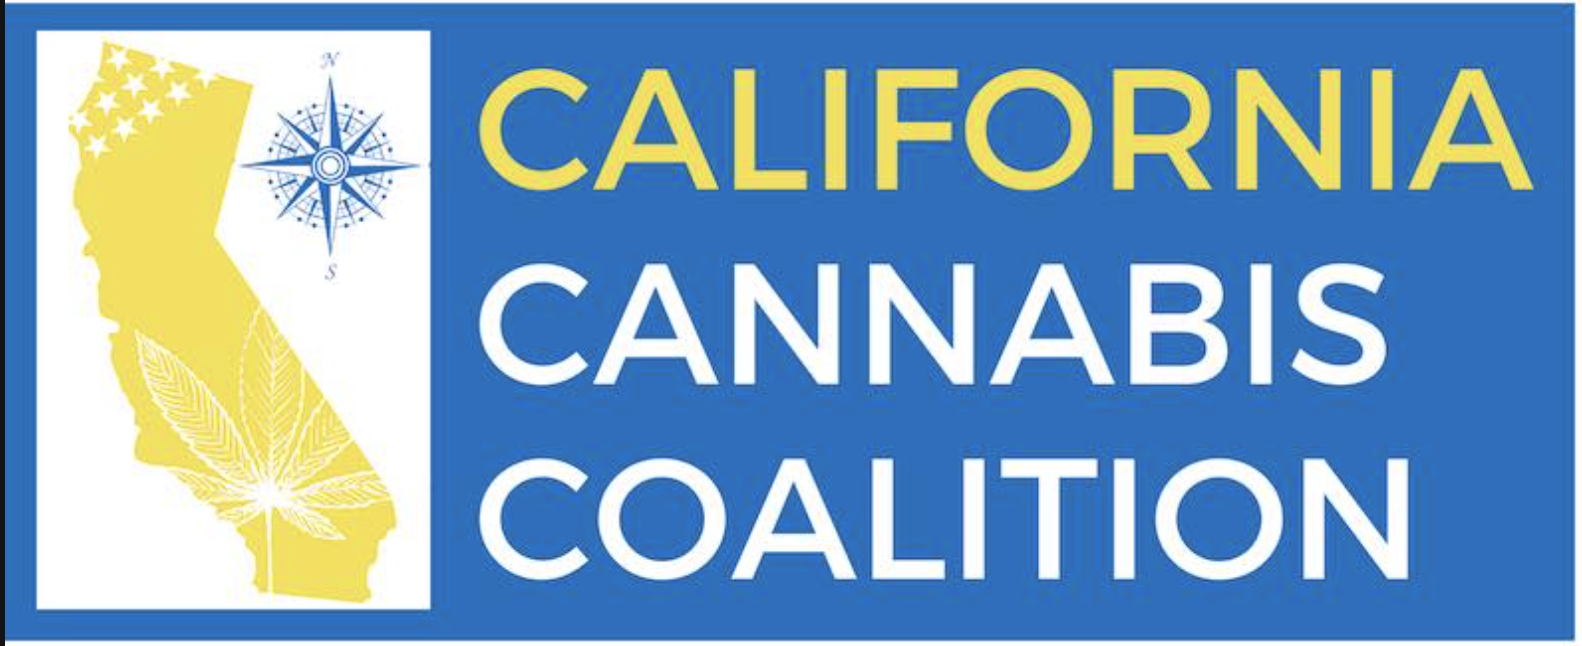 Meet Up at Zuber Lawler: The Future of Cannabis Legislation and Innovations behind Policy.